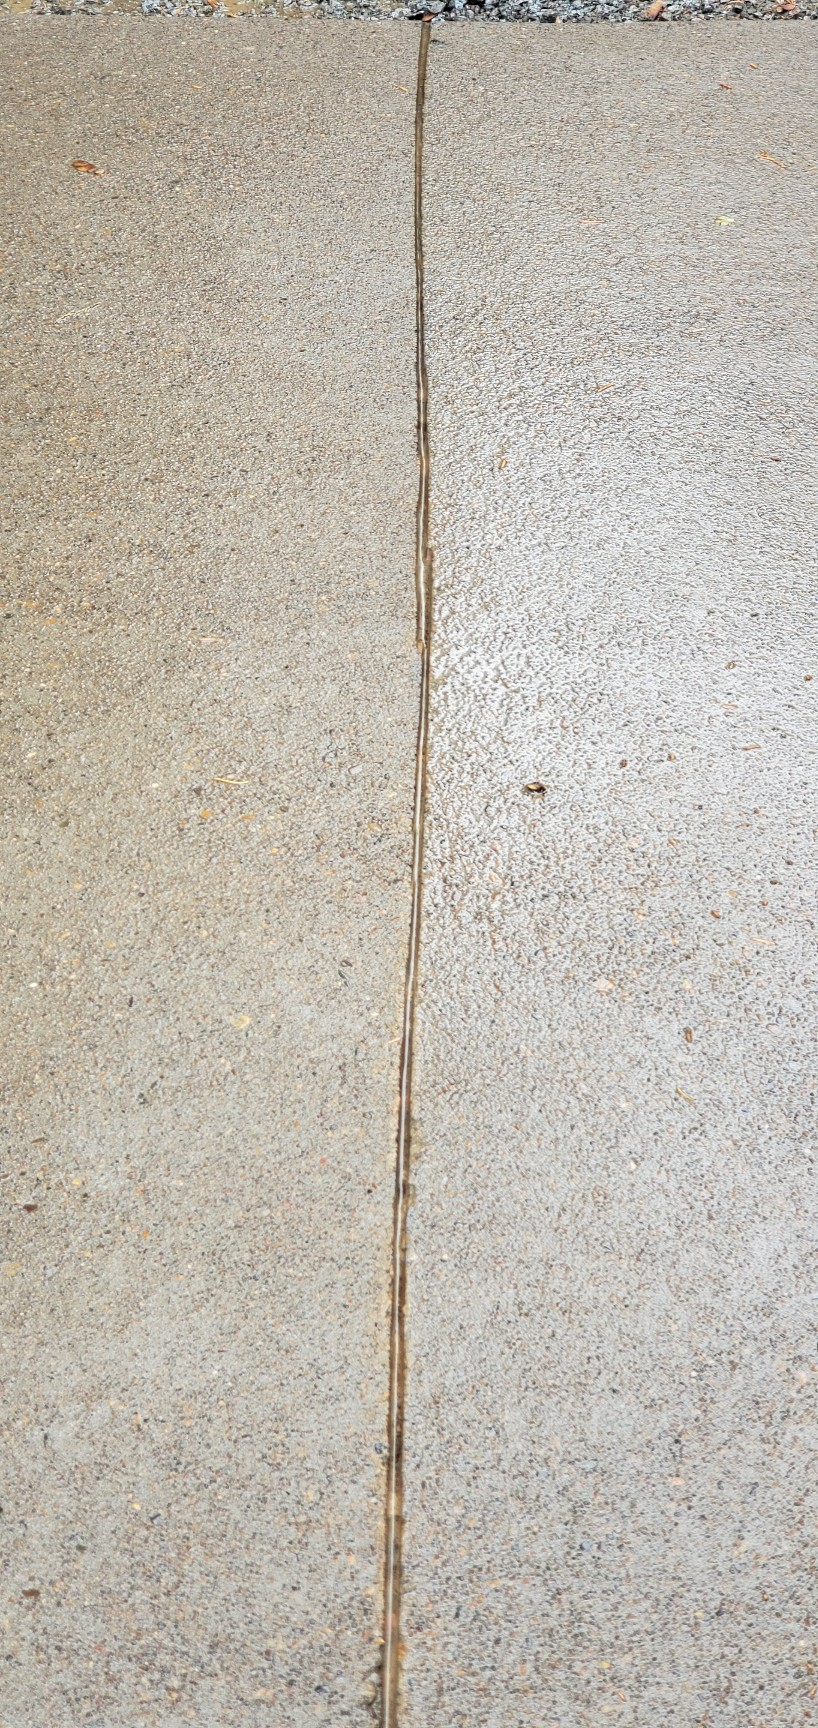 Issues with Concrete Saw Cuts-attach01-4-.jpg